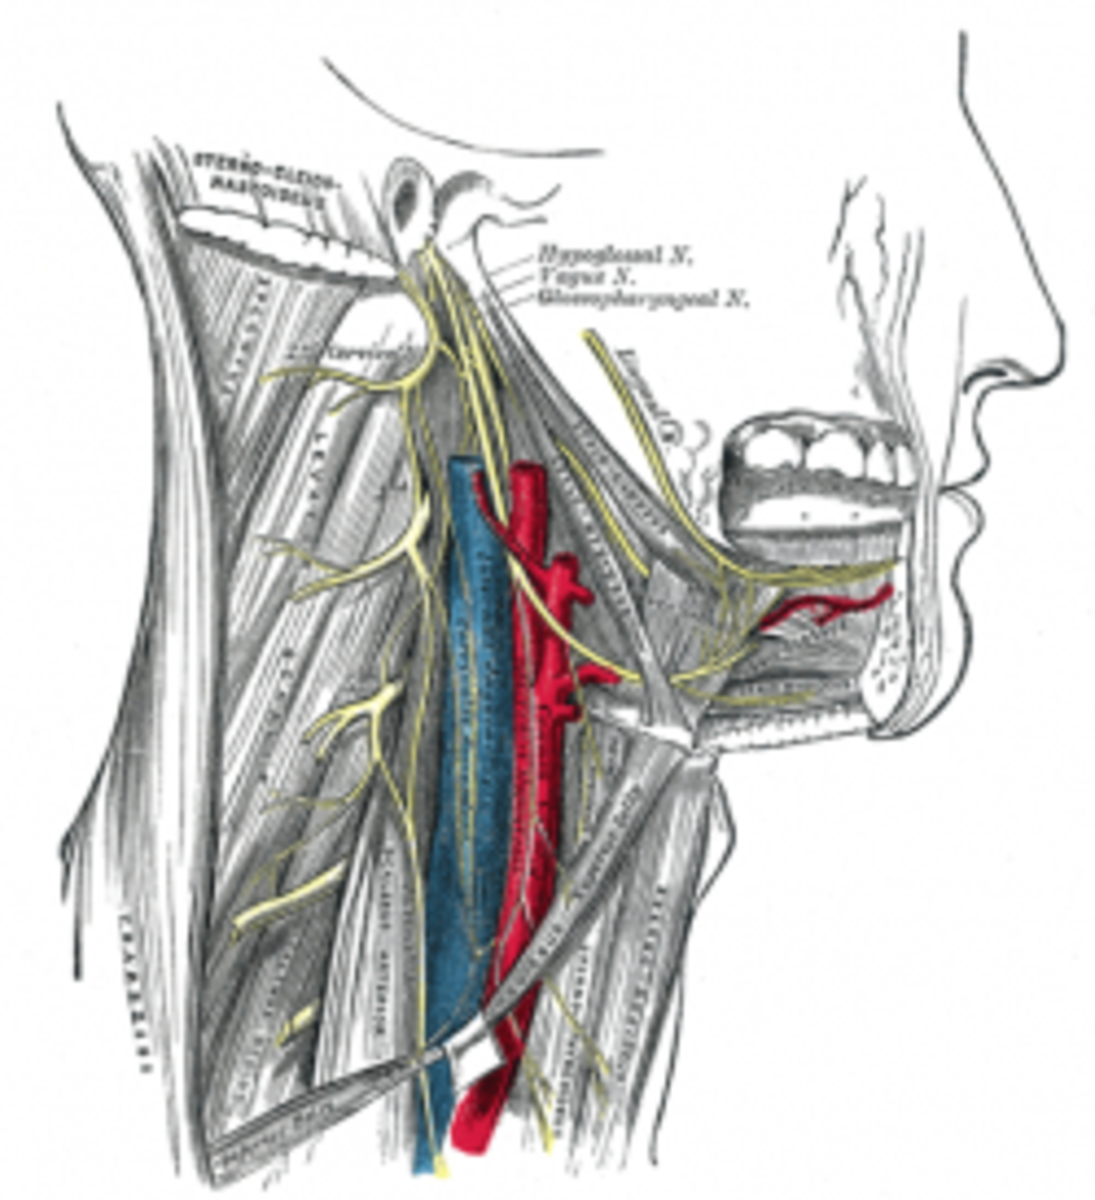 Hypoglossal nerve from Gray's Anatomy 1918 edition